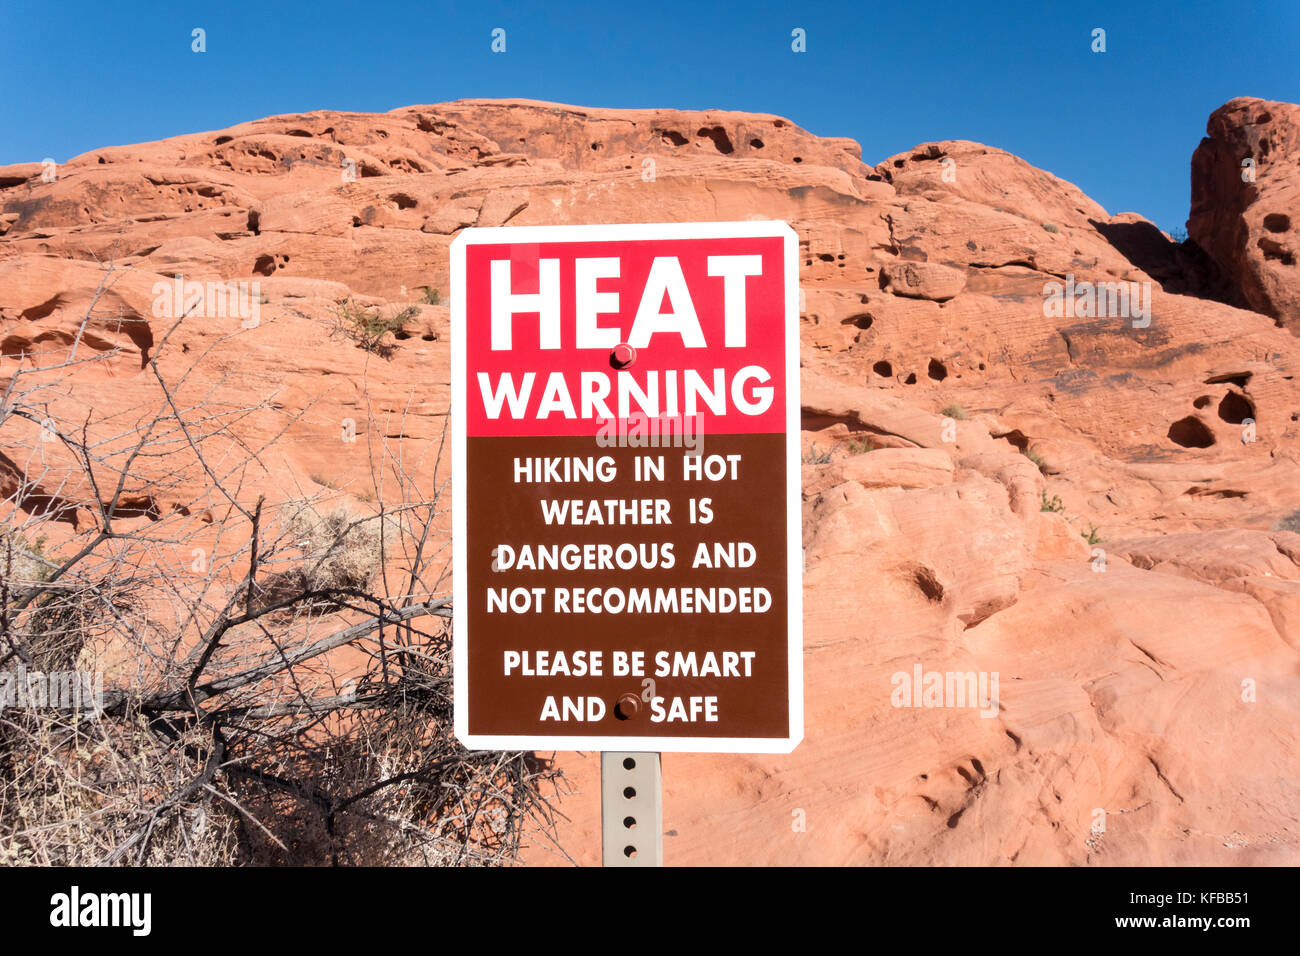 Valley of Fire State Park Nevada heat warning sign - Stock Image